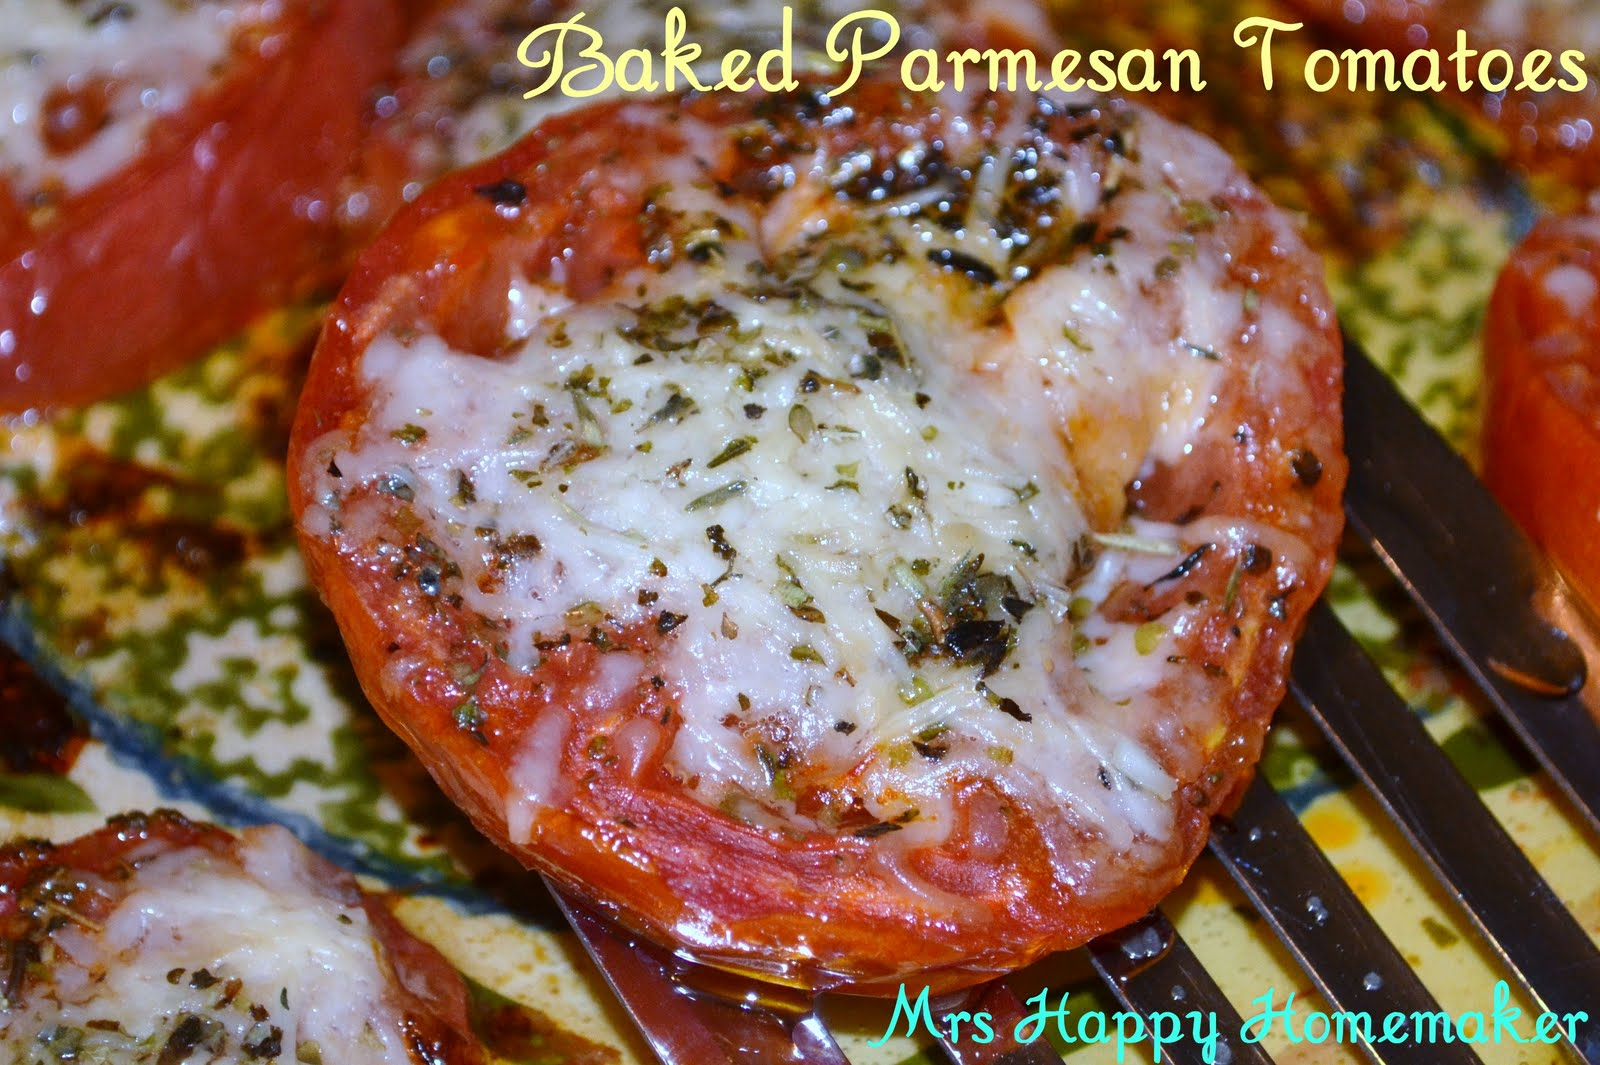 Baked Parmesan Tomatoes - Mrs Happy Homemaker